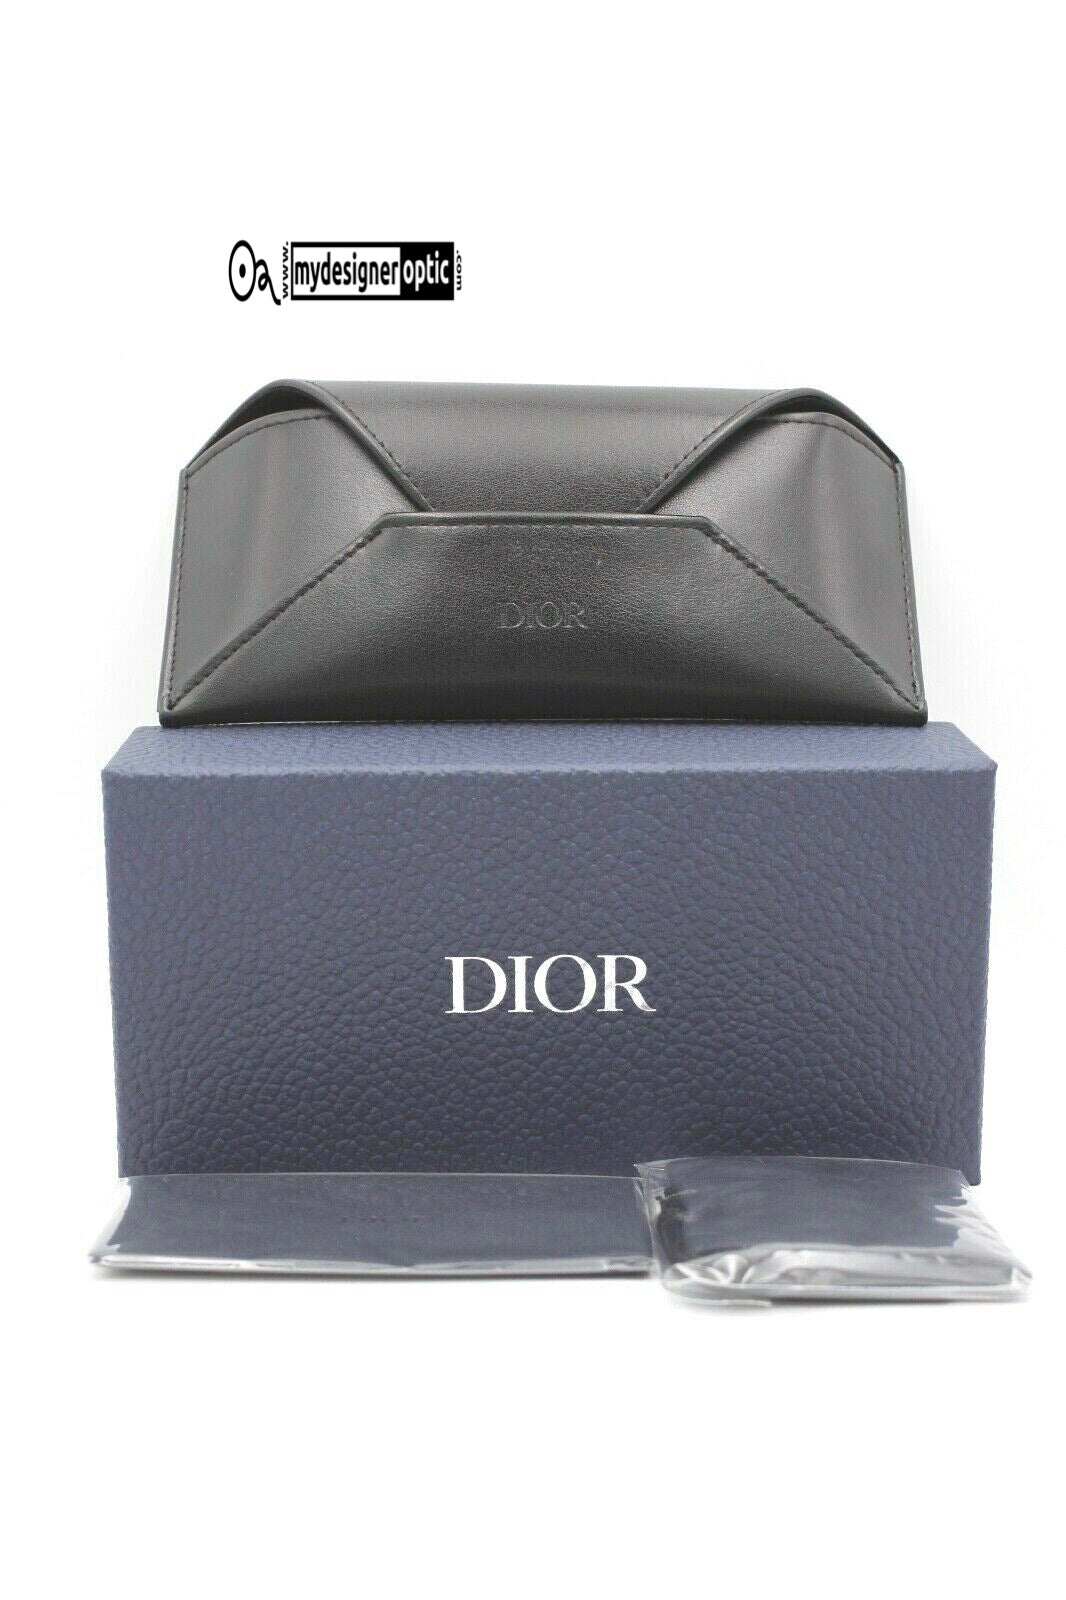 Very Dior2N Edition Limited R7HA6 51-20-150 Made in Italy (Real DEADSTOCK) - Mydesigneroptic